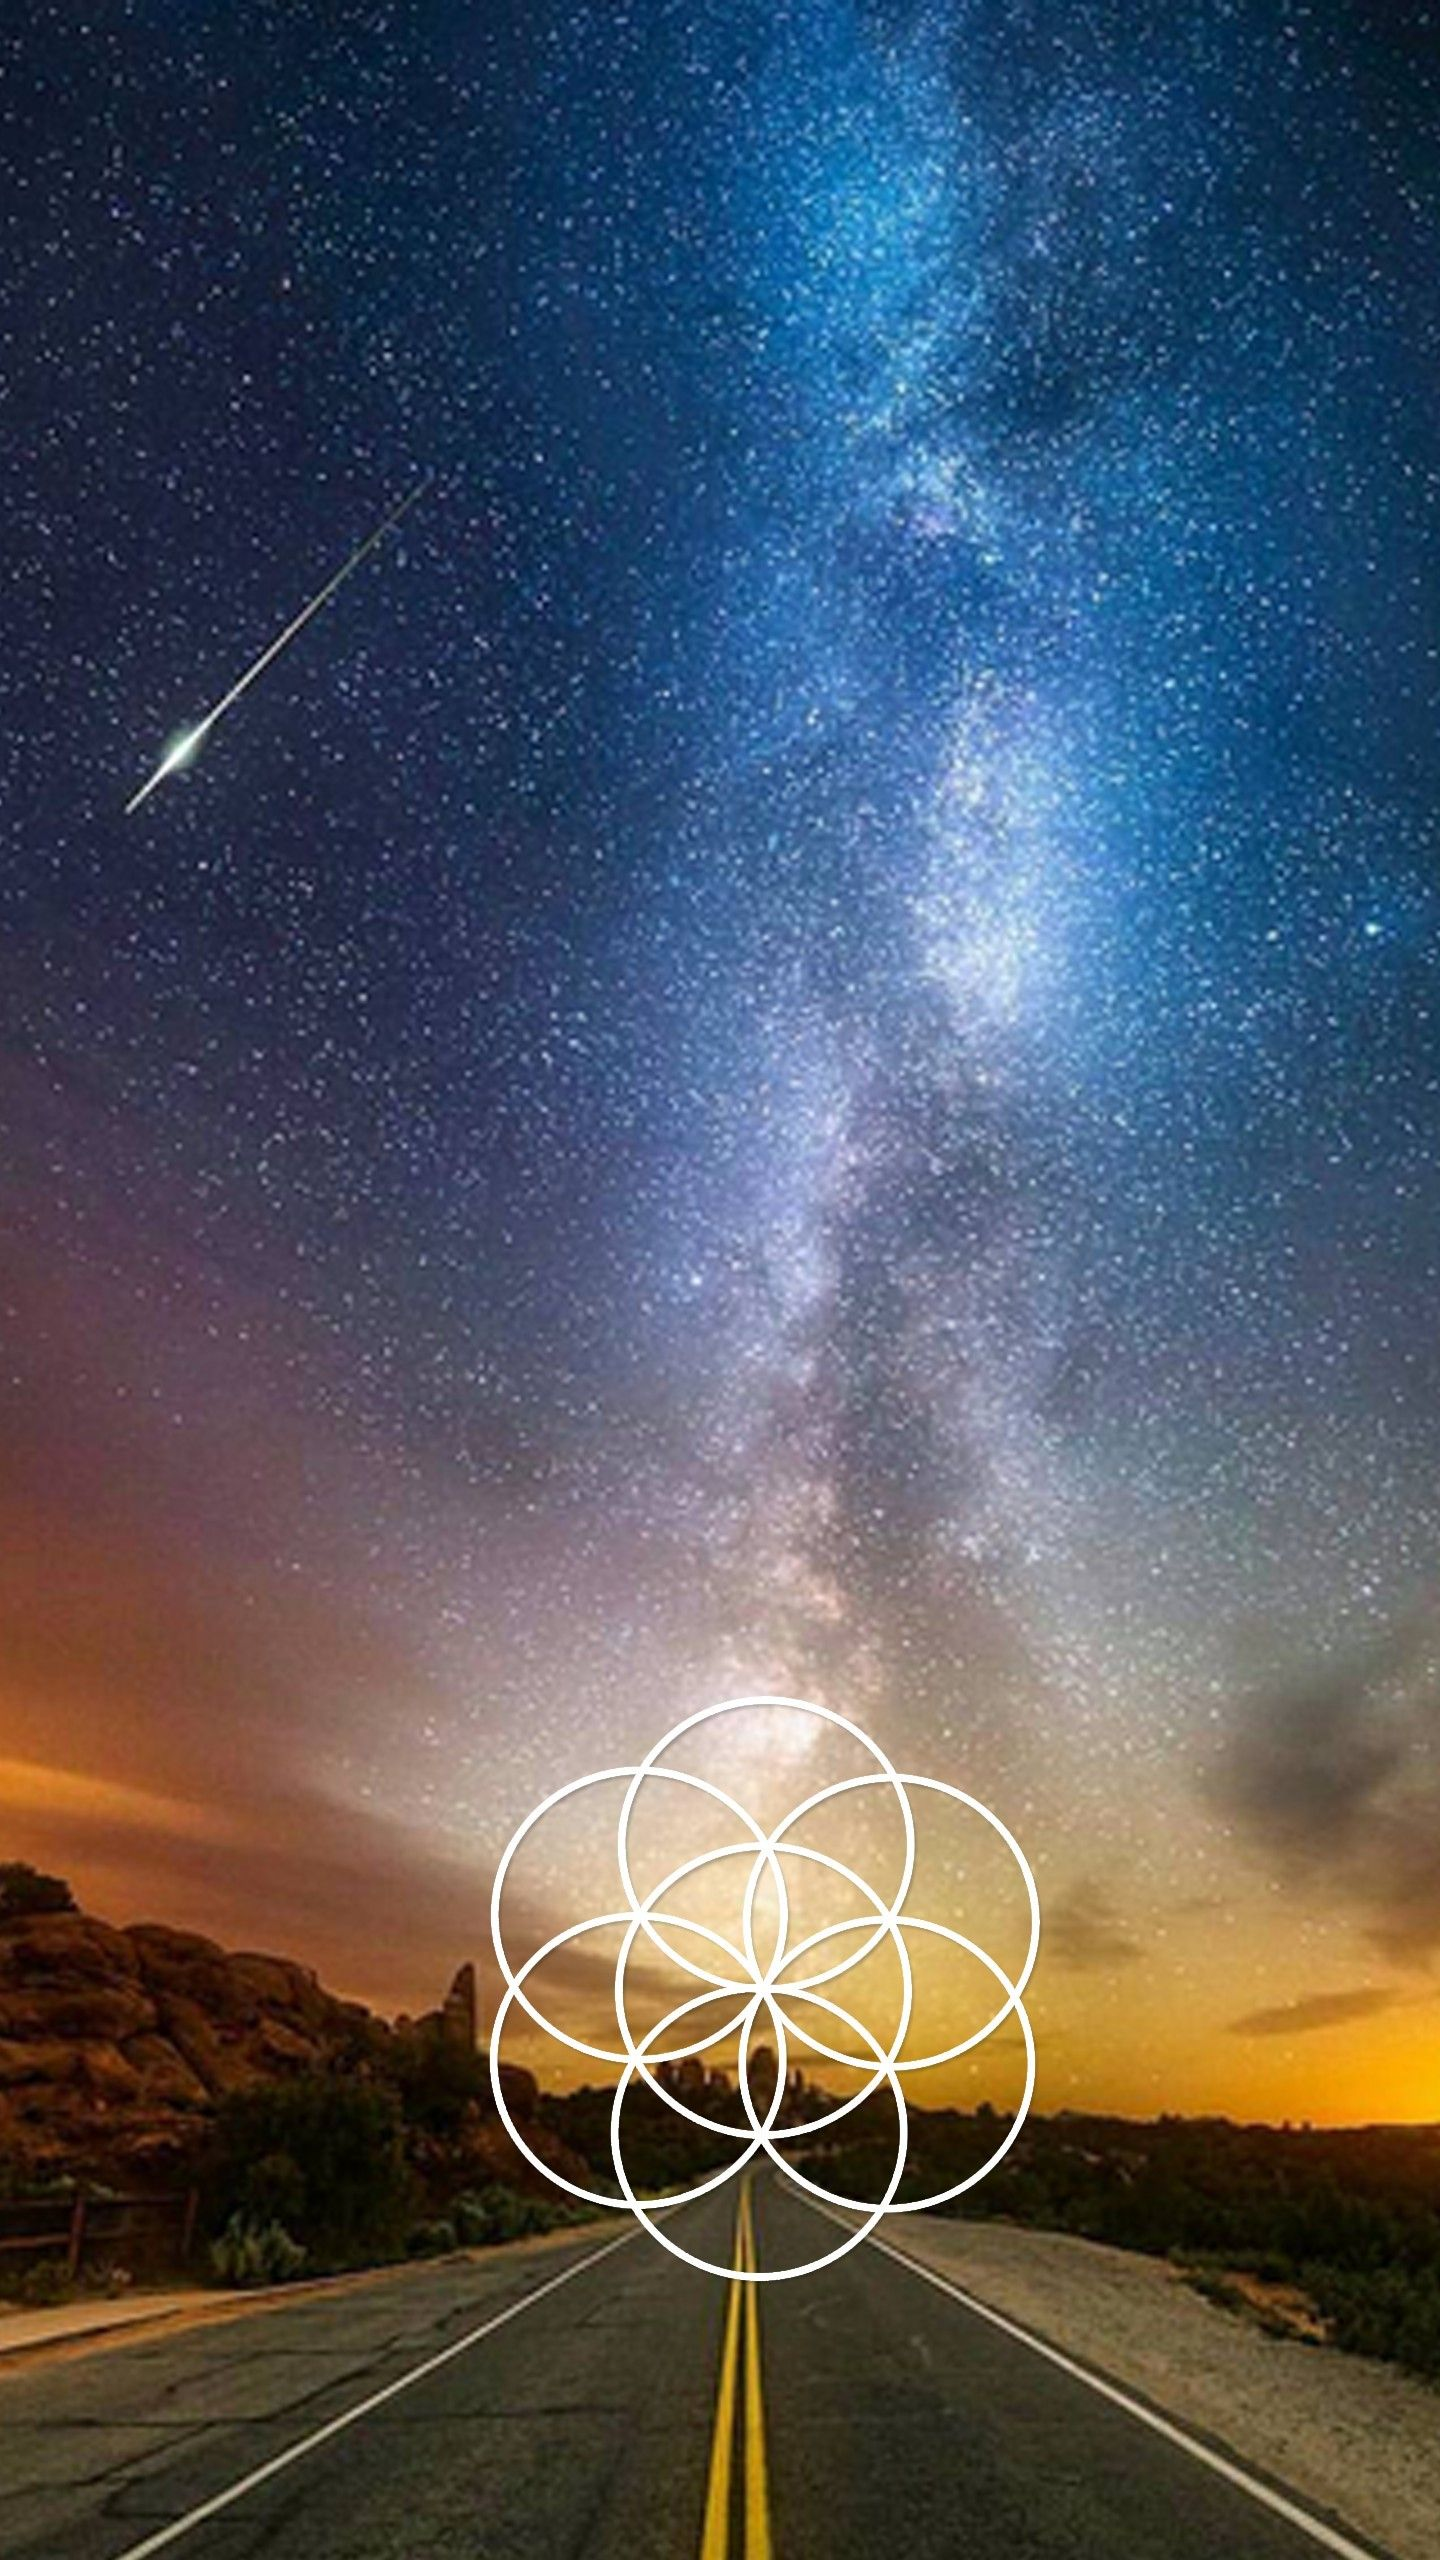 Flower Of Life Wallpapers On Wallpaperdog